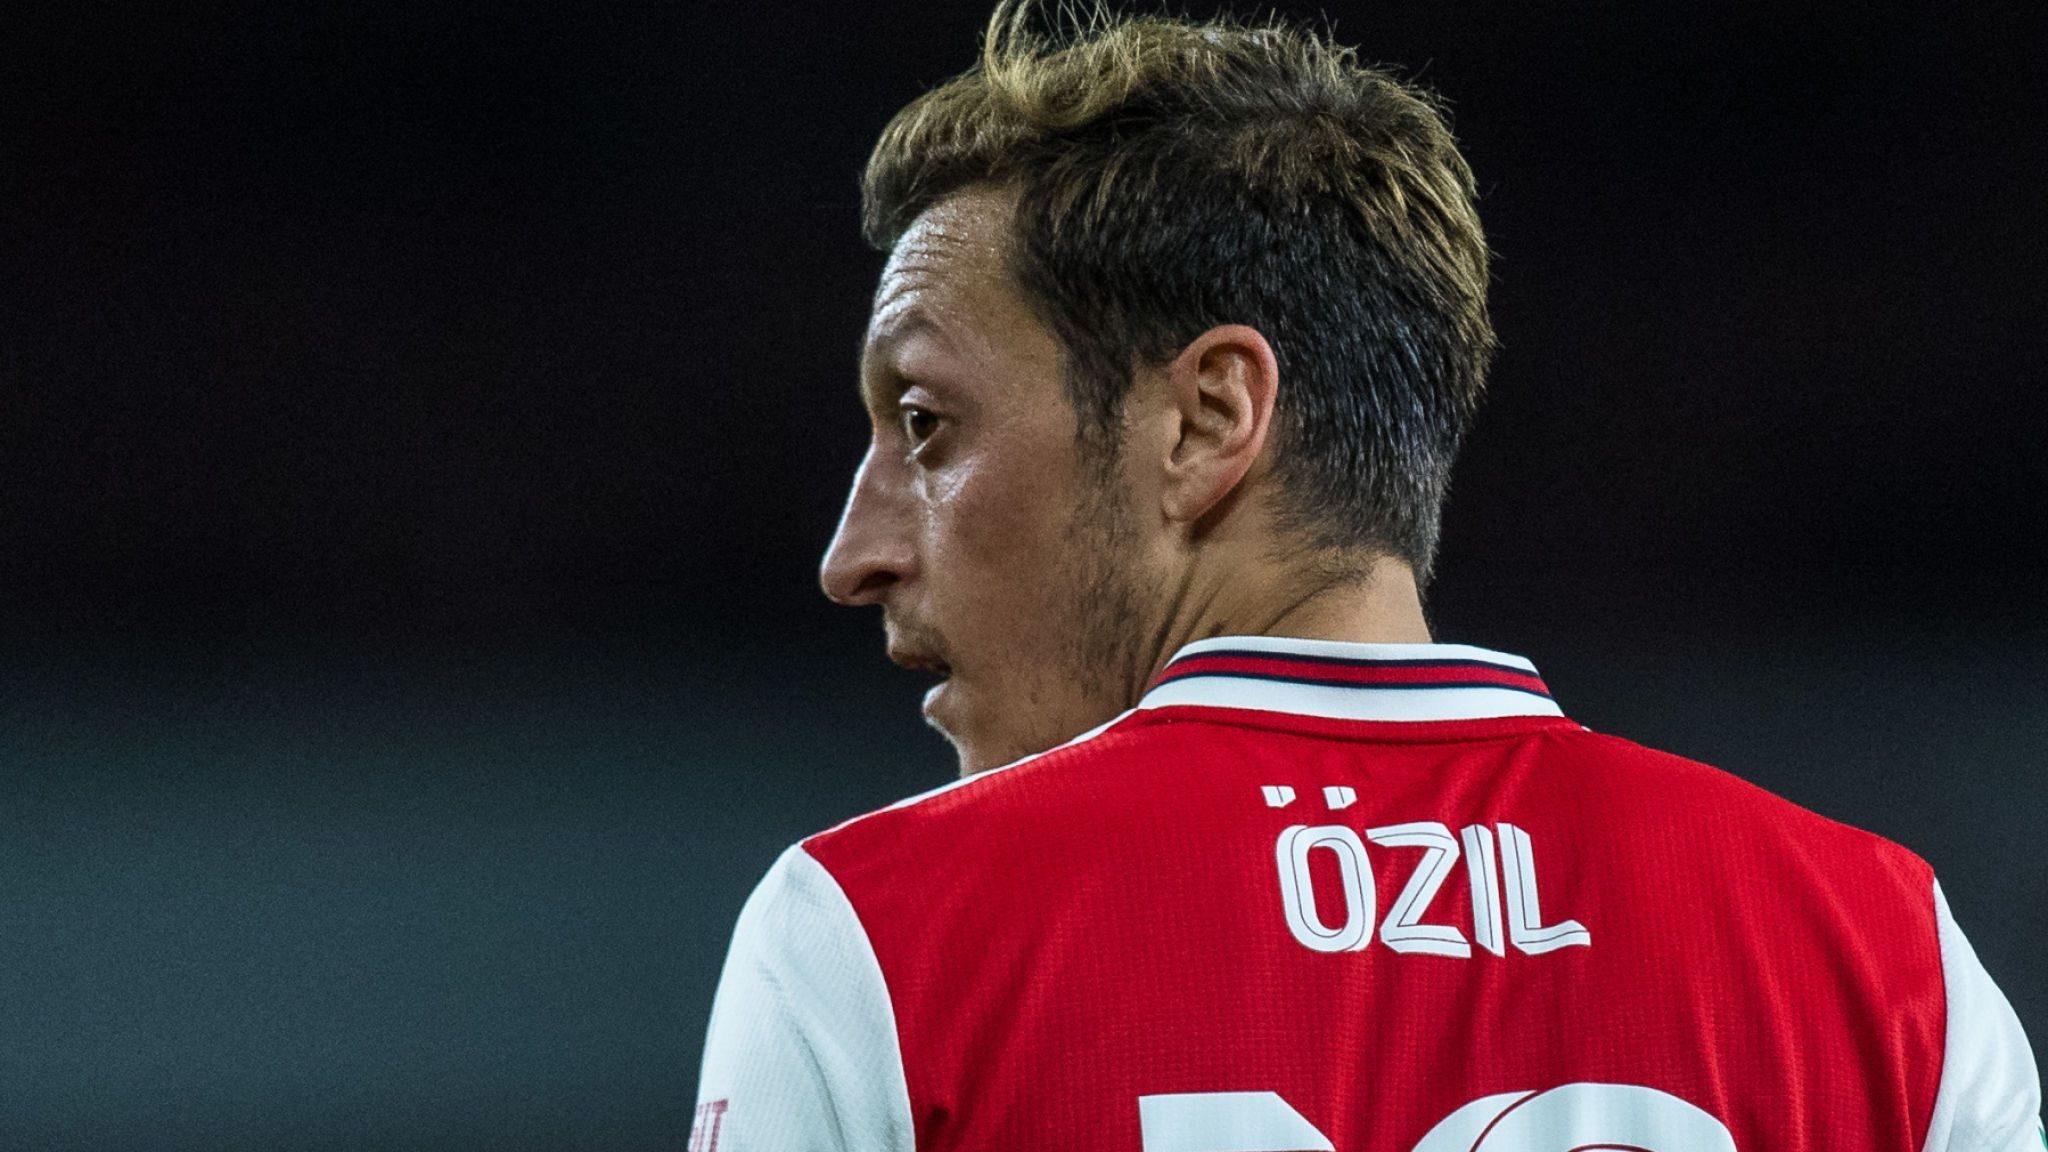 Arsenal urged not to repeat Mesut Ozil transfer mistake with Pierre-Emerick Aubameyang - Bóng Đá